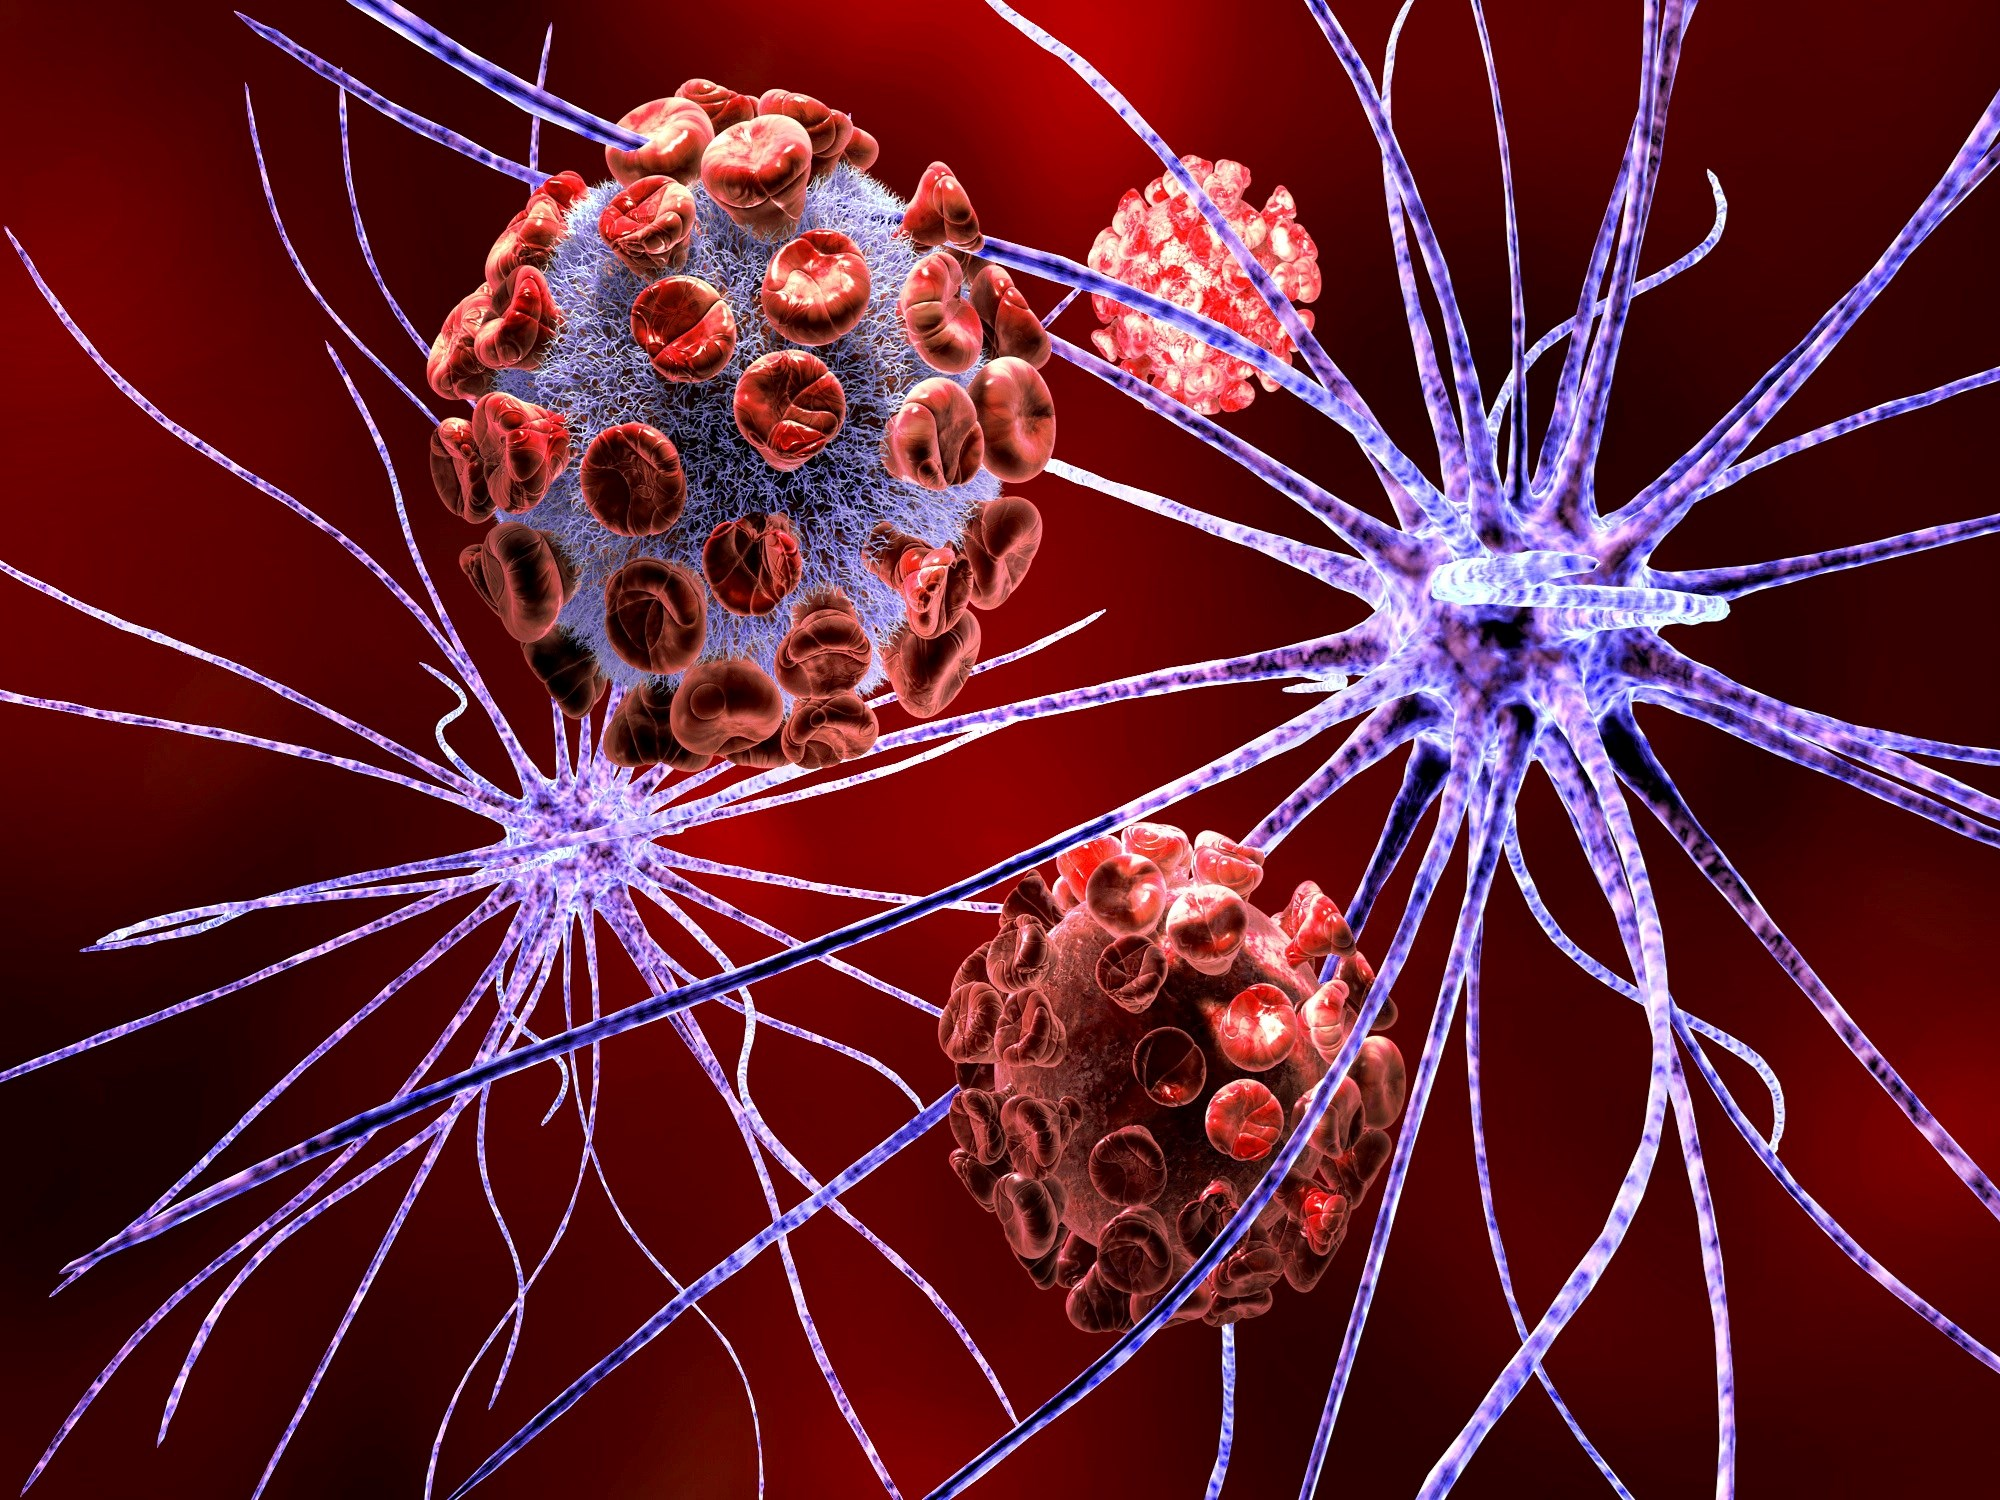 Herpesvirus Abundant in Alzheimer Disease Brain, New Study Finds